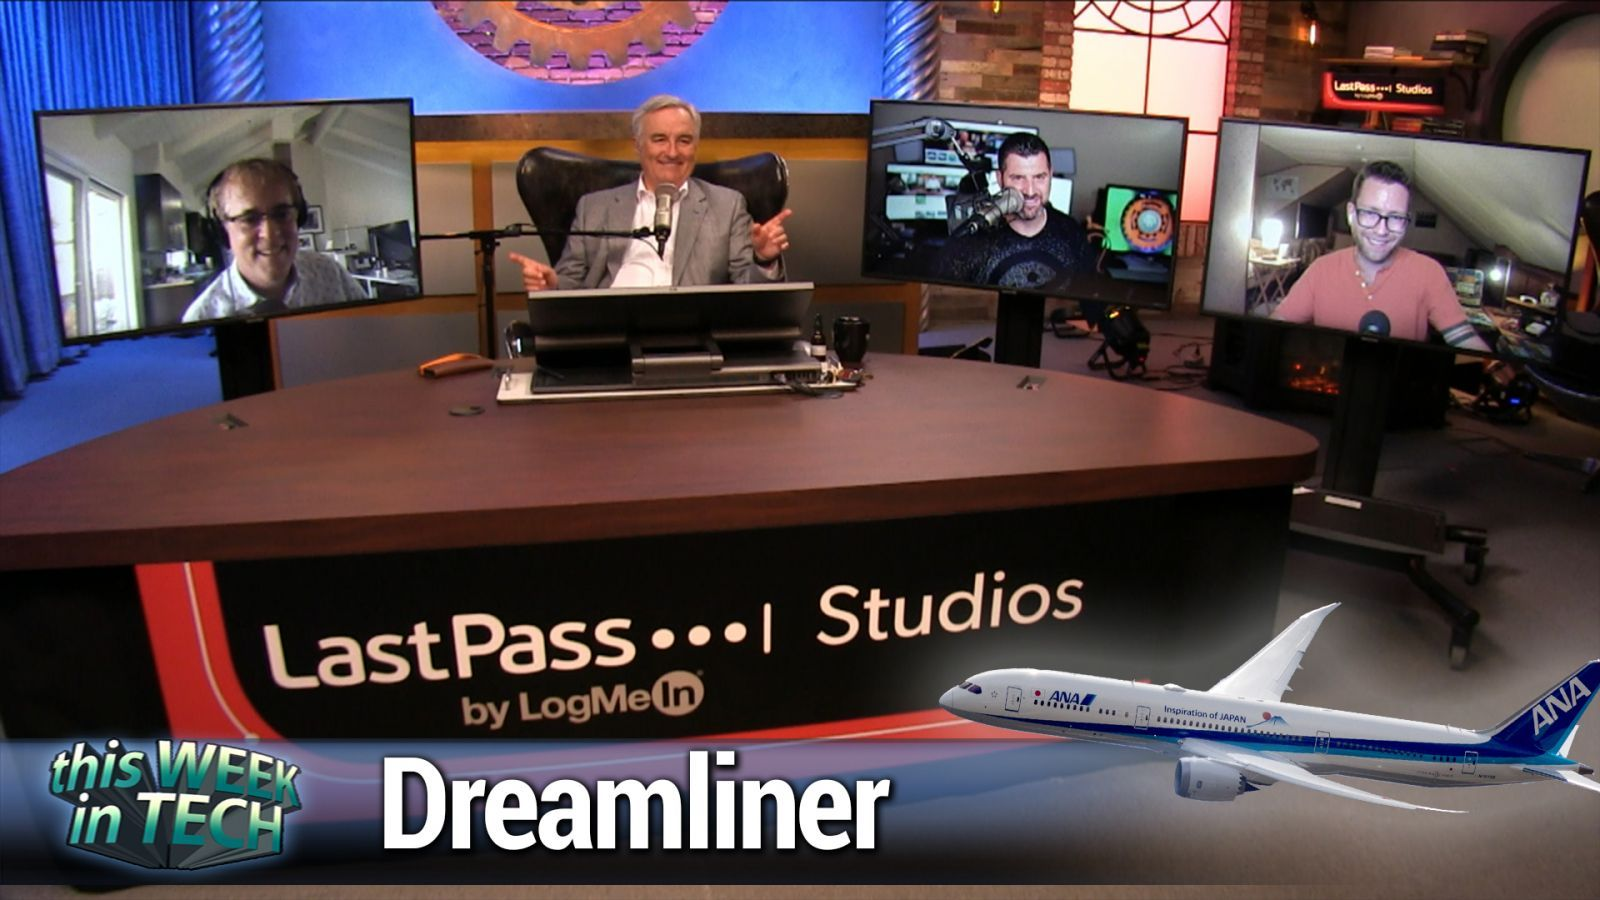 TWiT 787: Dreamliner - TikTok Sale, Trump YouTube Ads, Apple Announcement